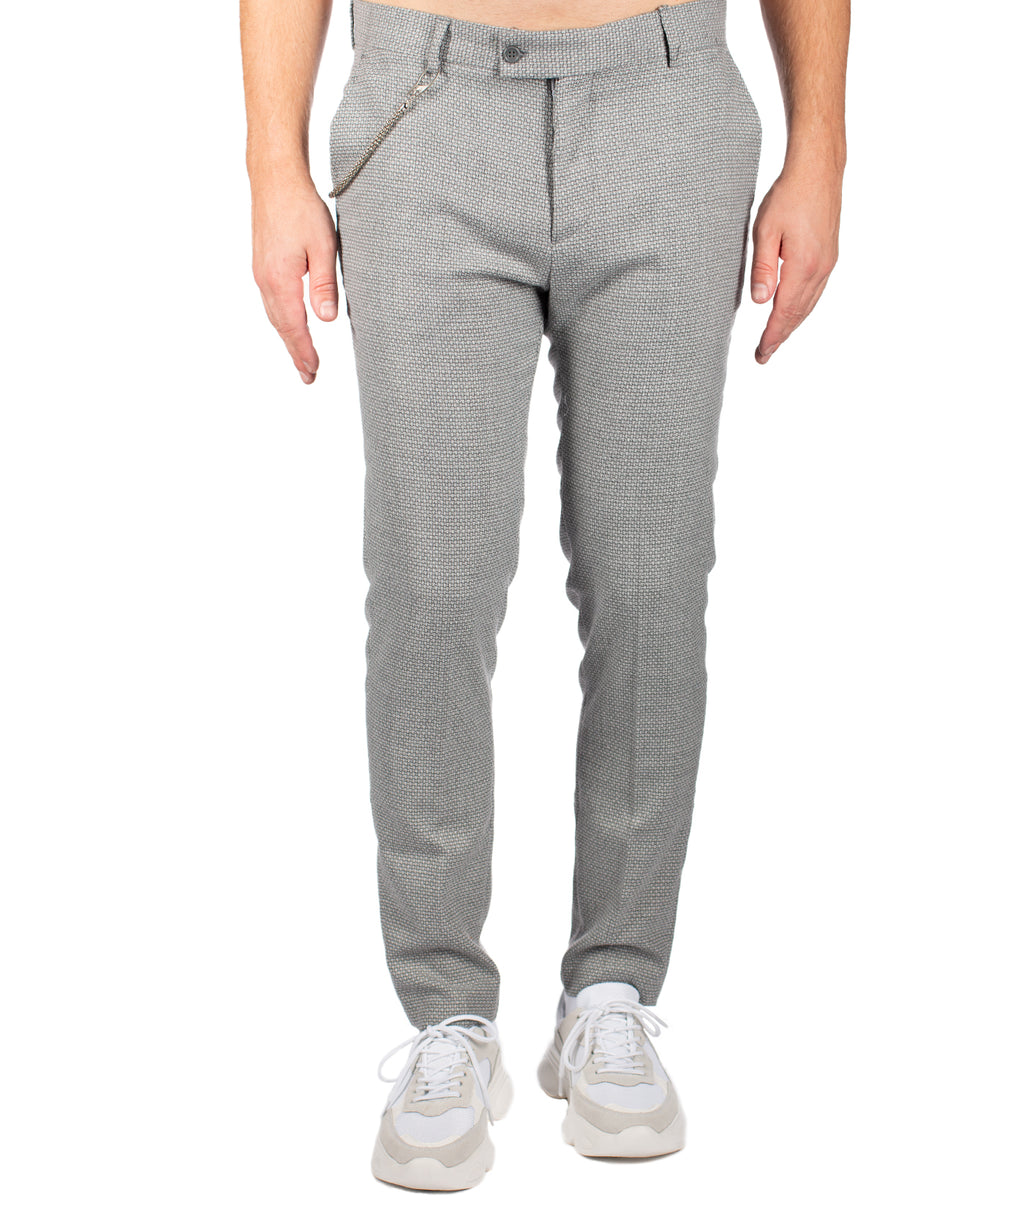 CASUAL PANTS LIGHT GREY - Vaarora